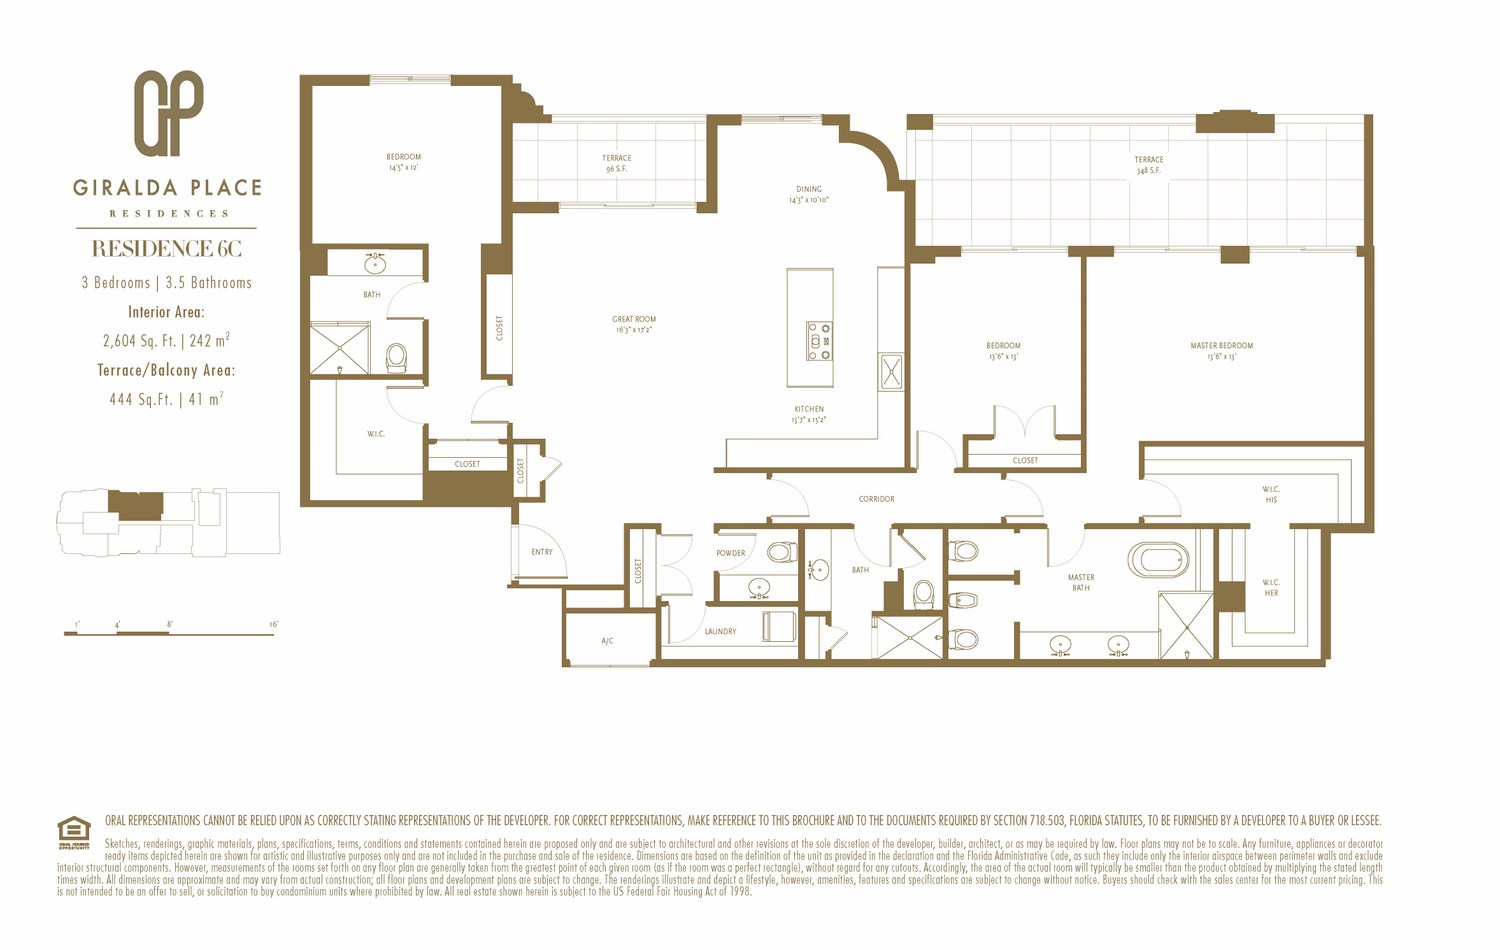 Giralda Place - Floorplan 11